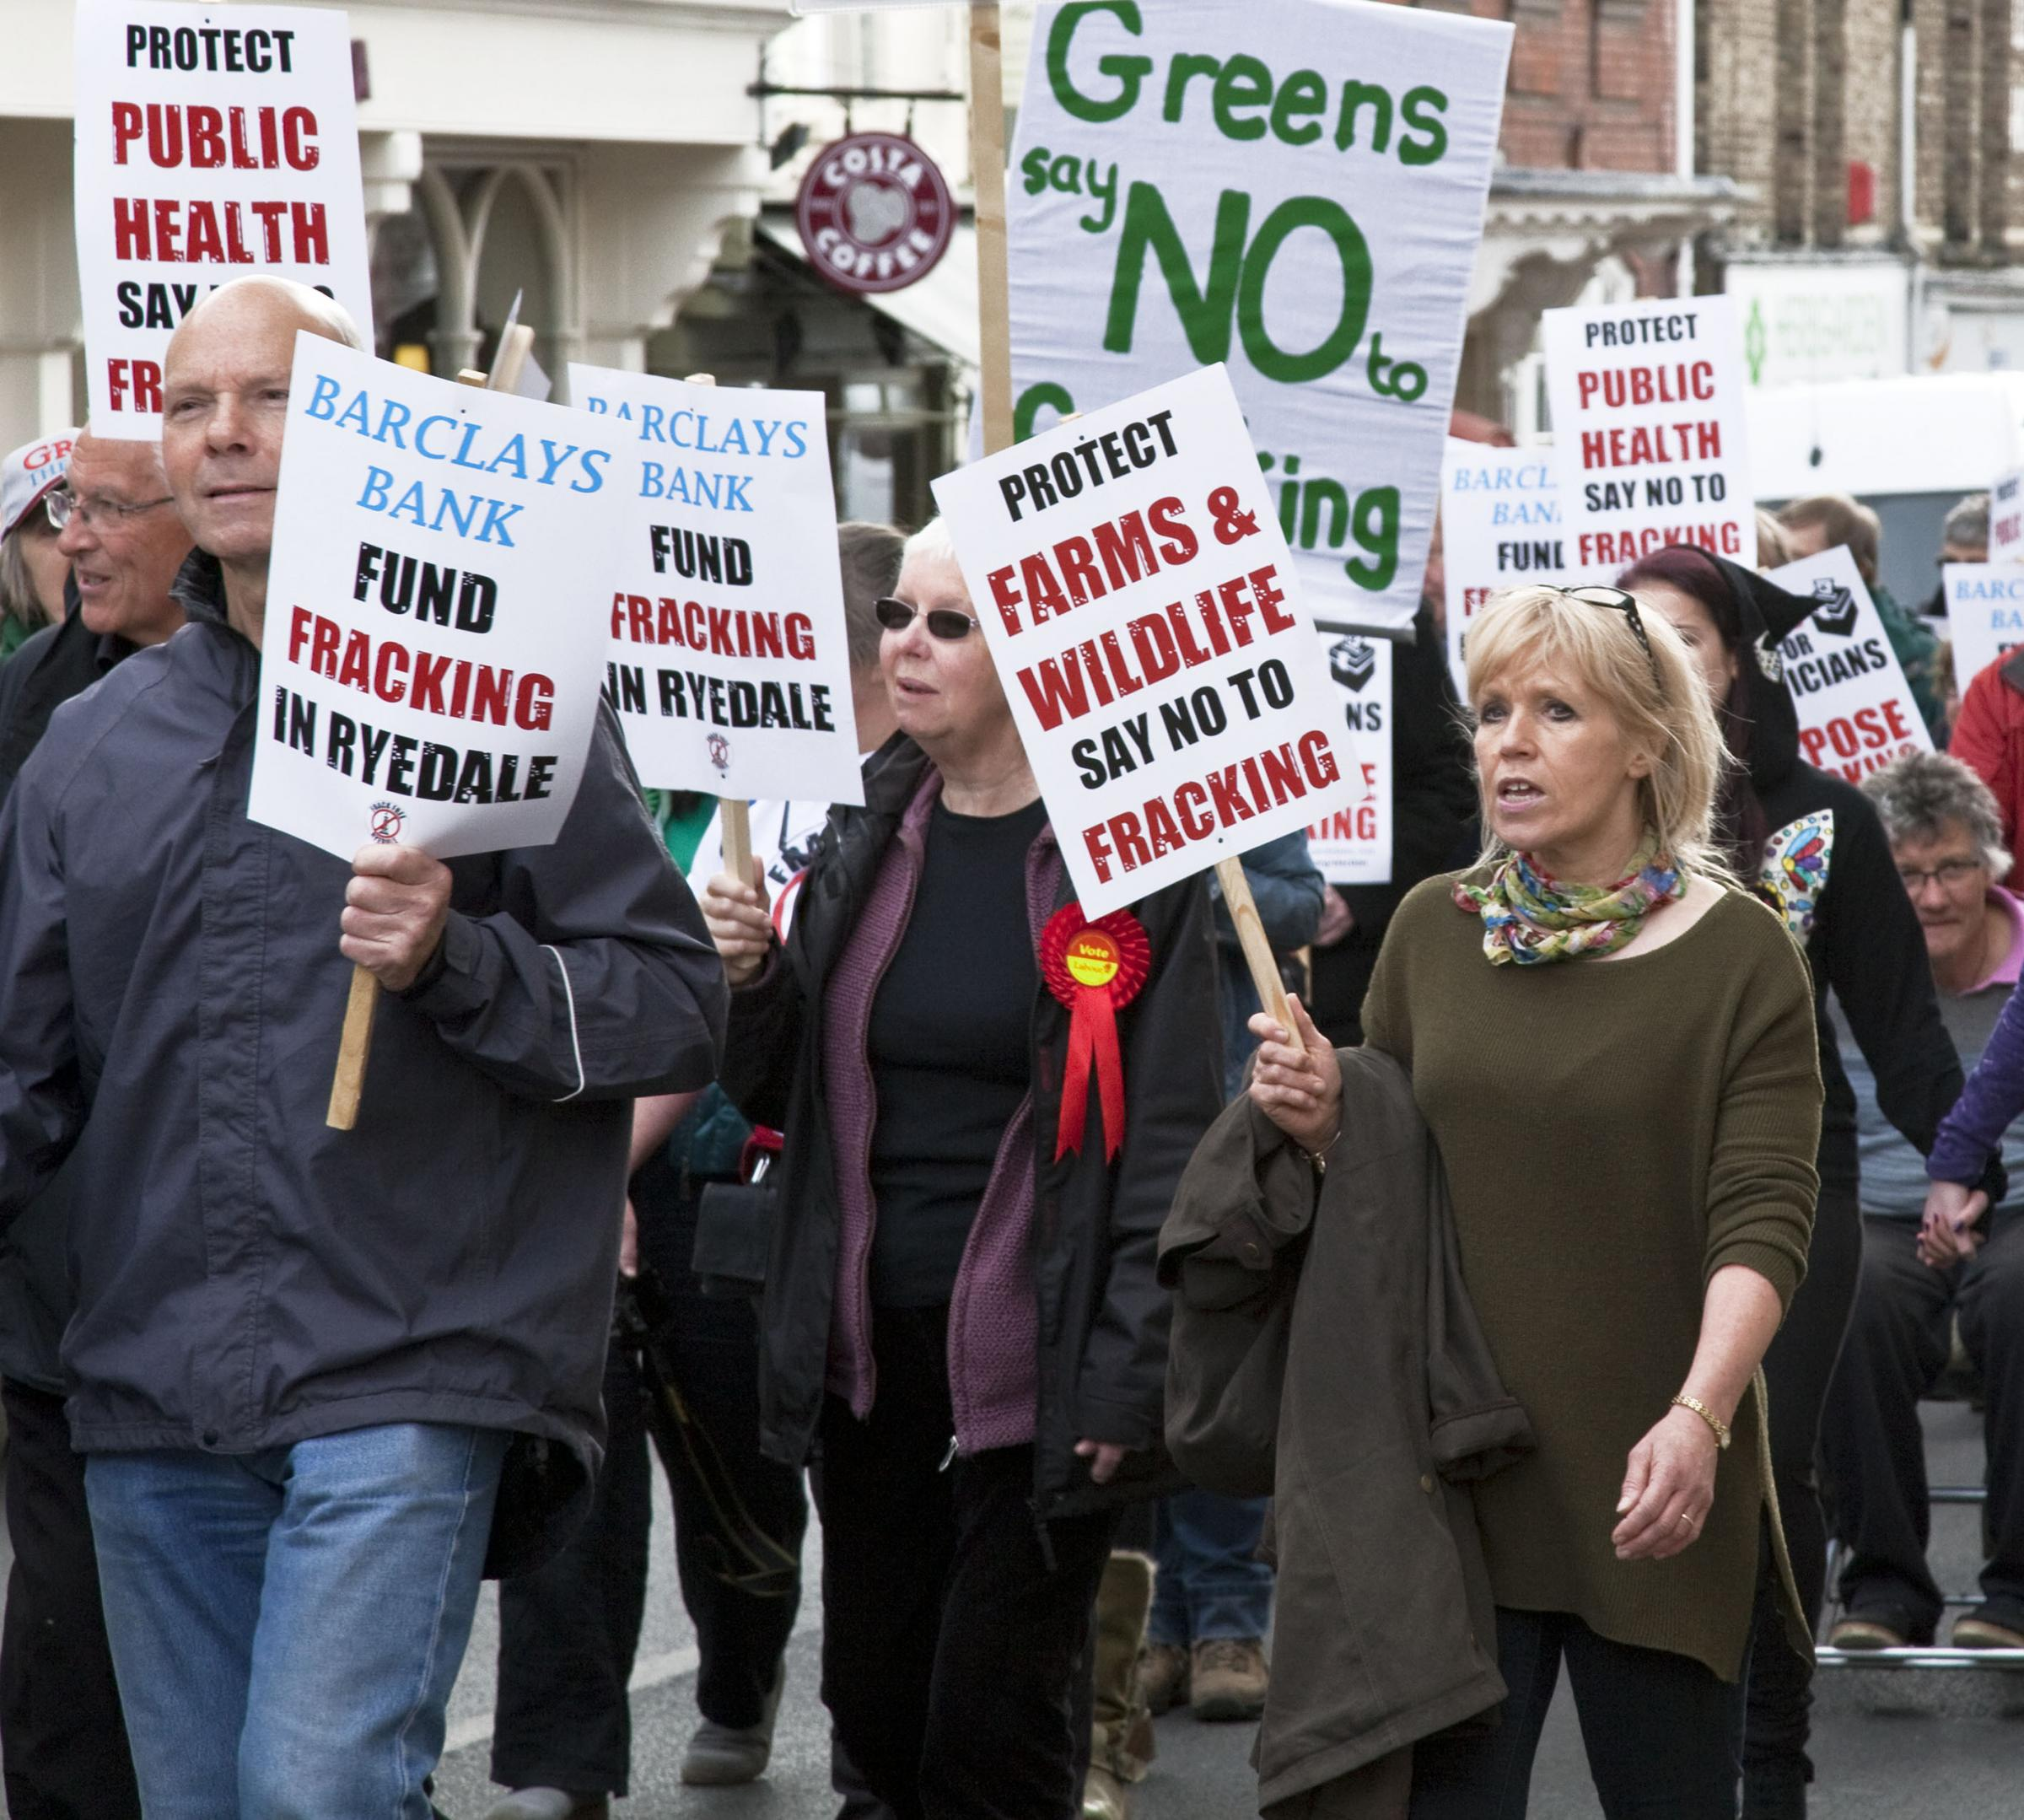 Frack Free Ryedale protestors, who will stage a rally in Old Malton